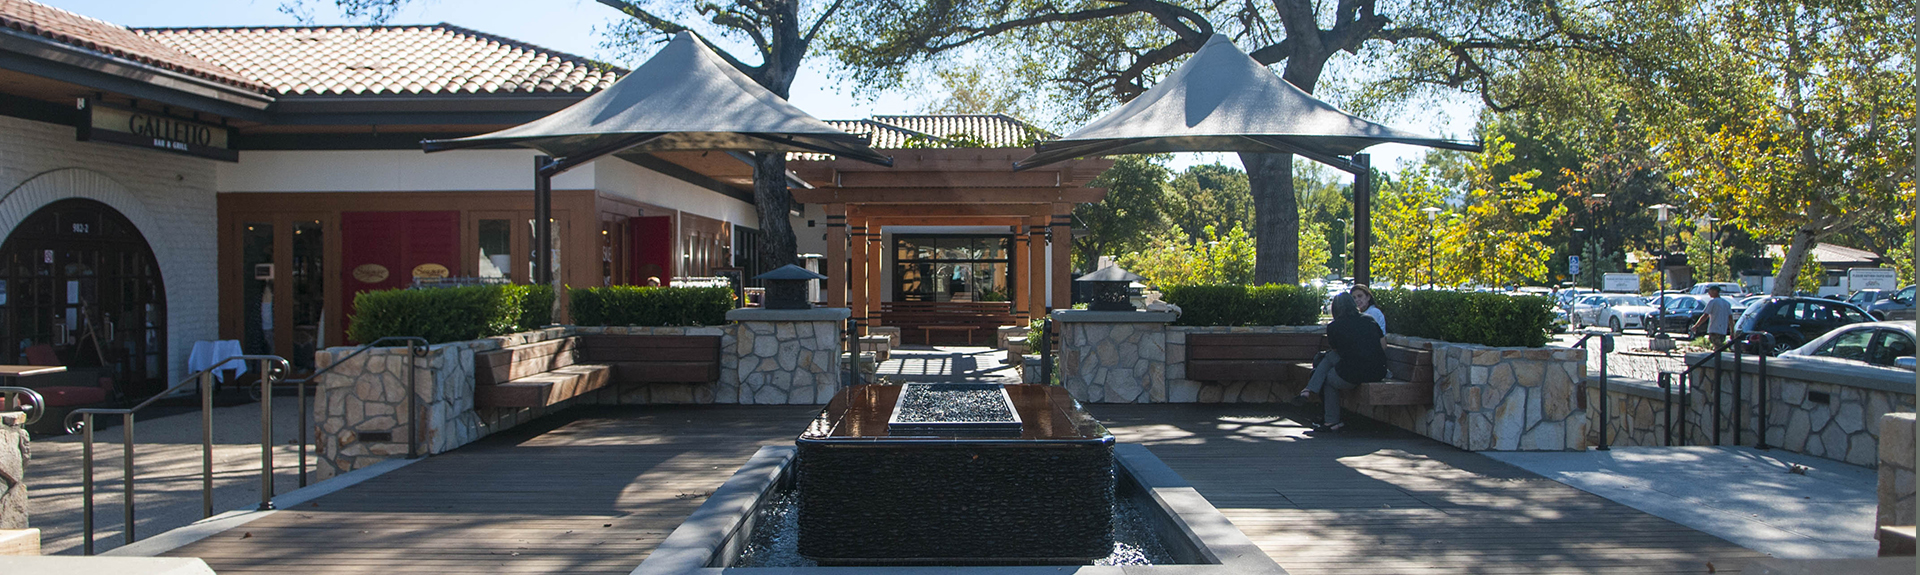 westlake_patio